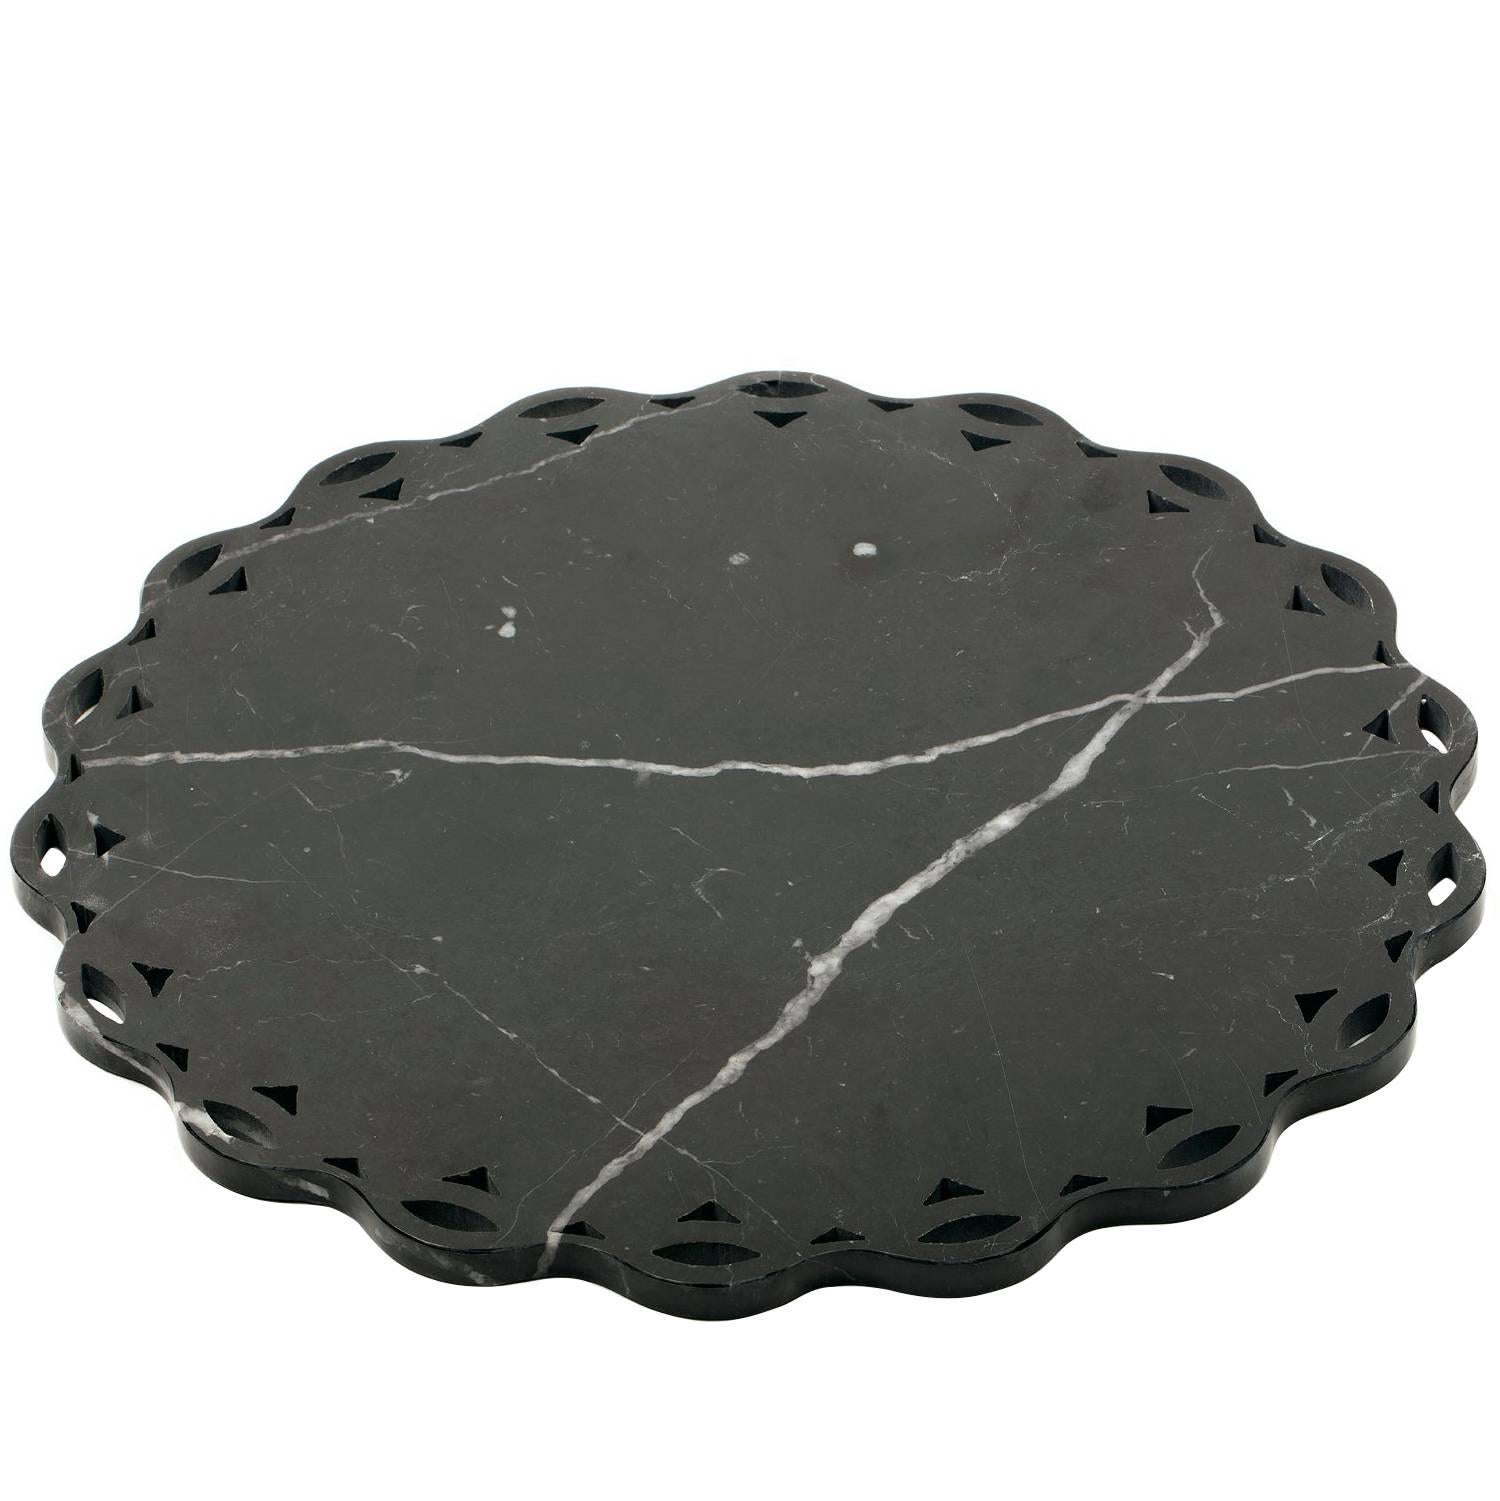 Round Marble Tray or Plate with Scalloped Edge